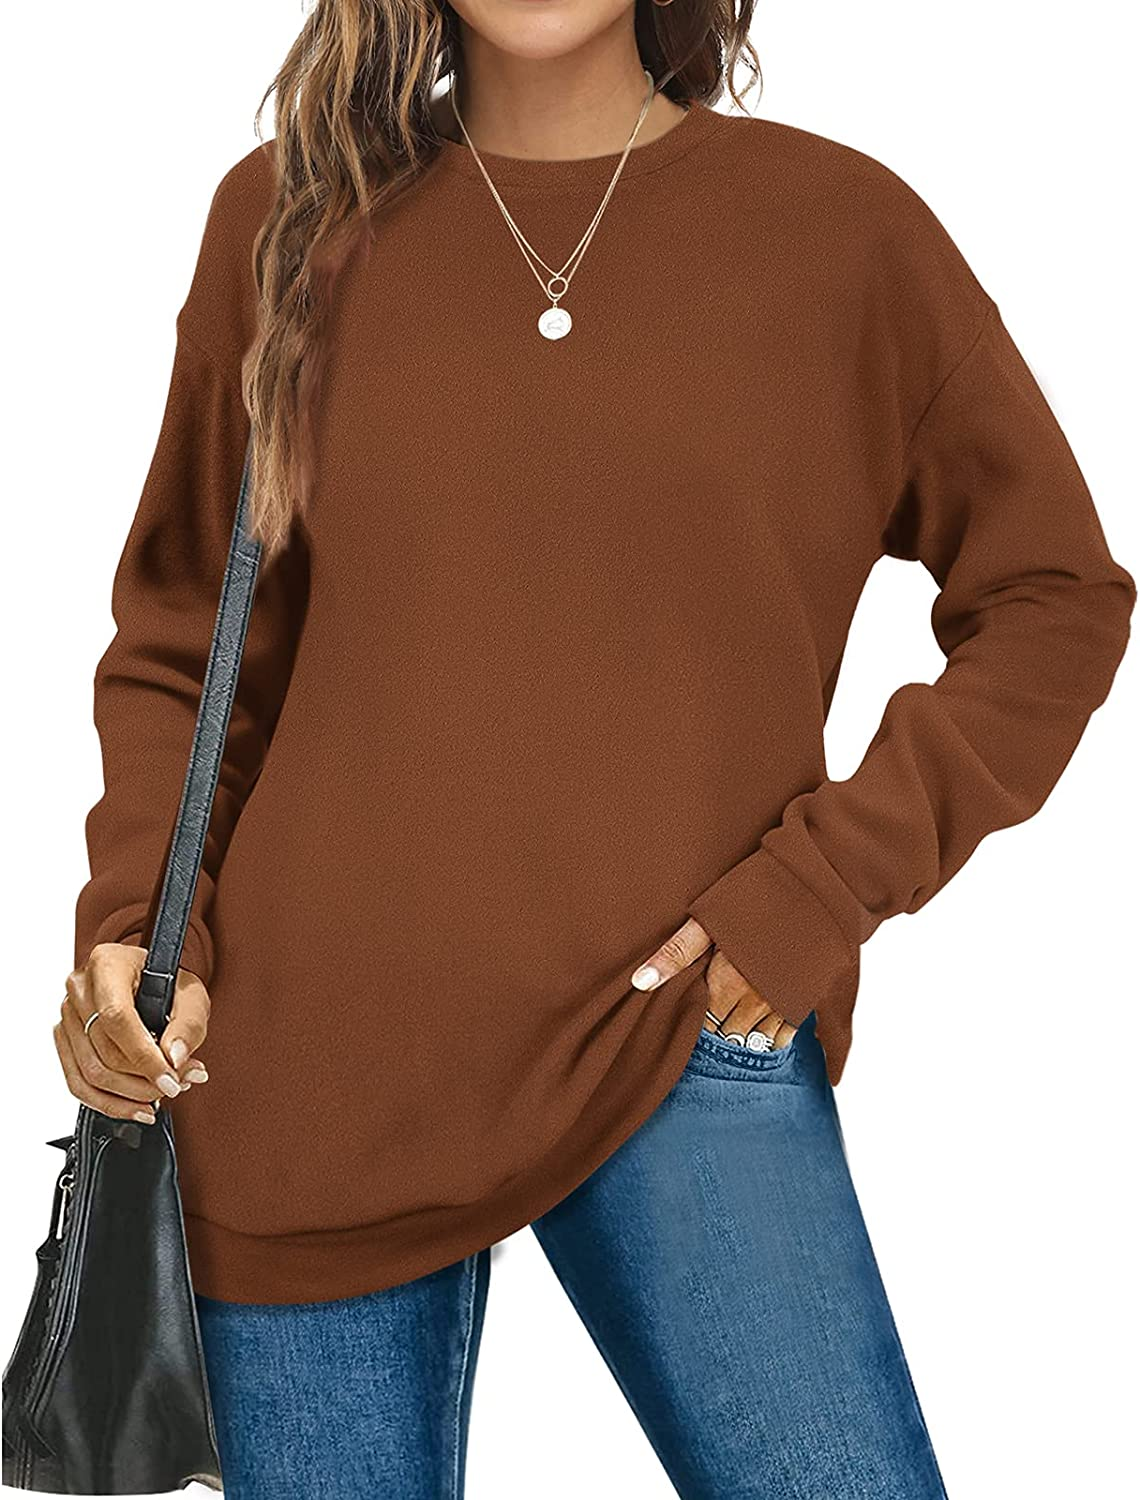 Sweatshirts for Women Crewneck Long Sleeve Solid Color Soft Fashion Tops